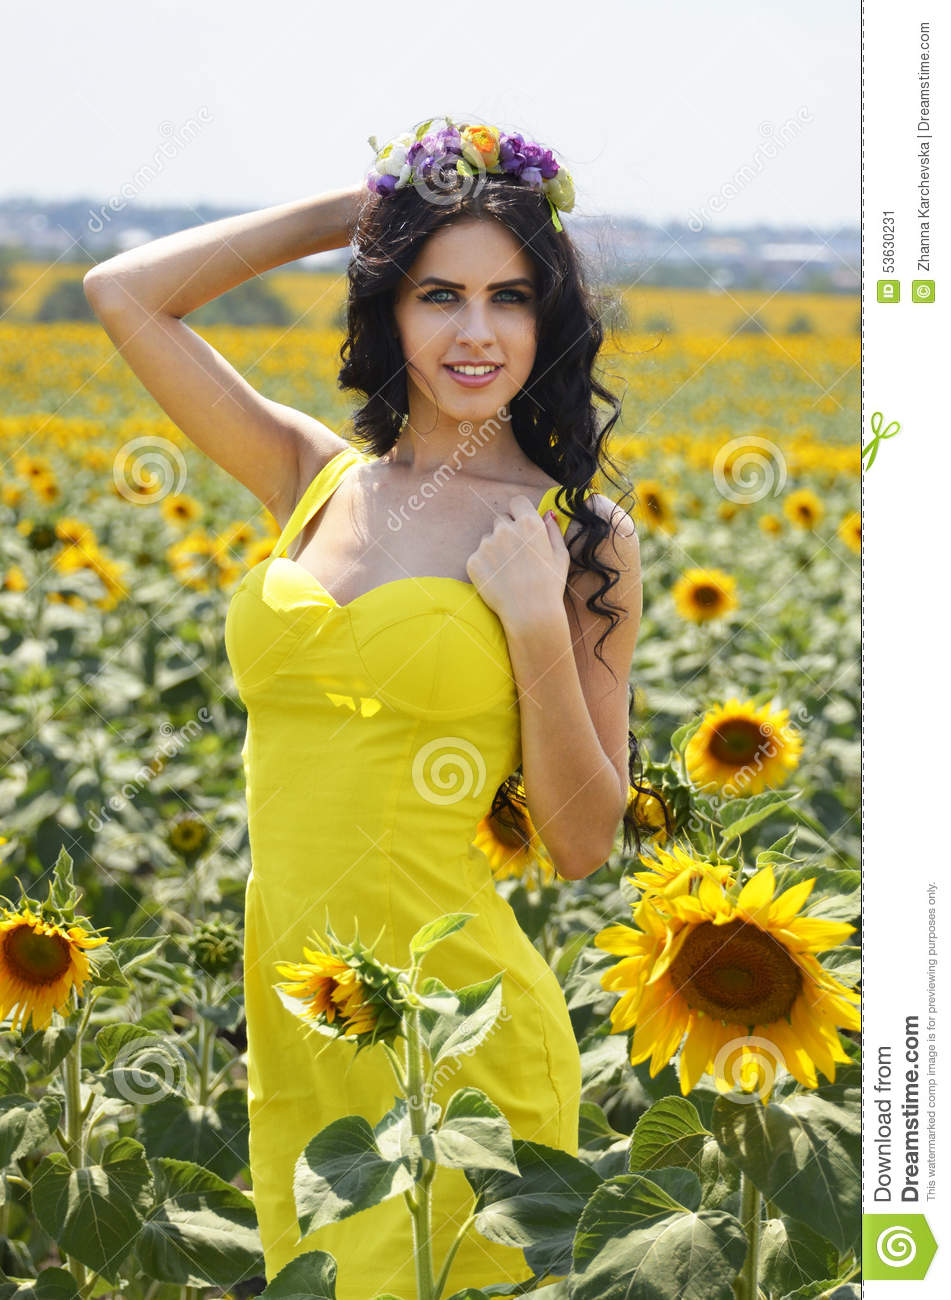 Luxurious brunette in a yellow dress with flowers stock image download luxurious brunette in a yellow dress with flowers stock image image of yellow mightylinksfo